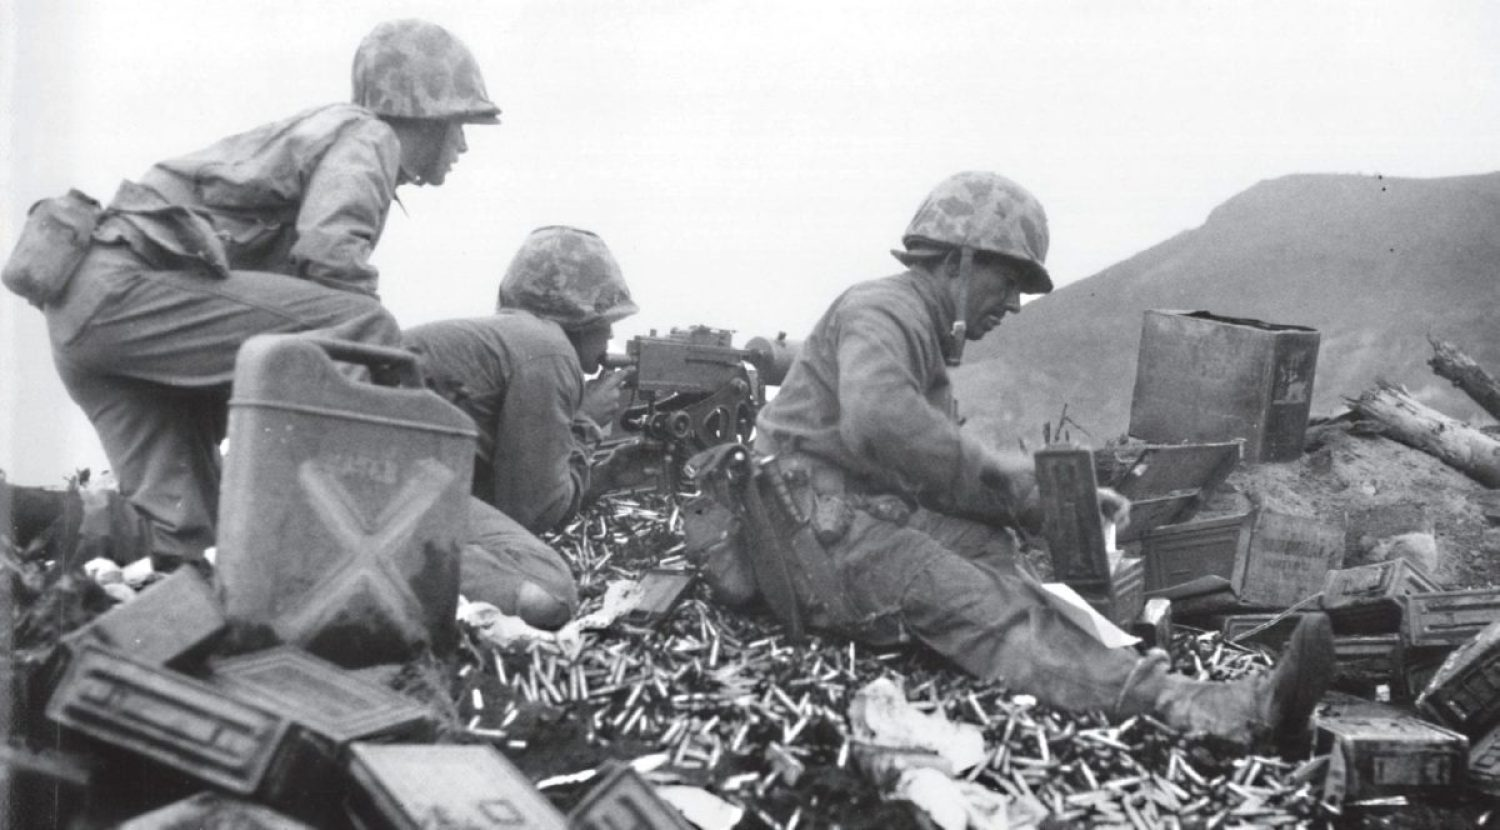 Marines manning a .30-caliber machine gun crouch amid a welter of spent shell casings and empty ammunition boxes. While a common misconception holds that the capture of Mt. Suribachi marked the end of the fighting at Iwo Jima, the truth is that the battle had just begun. The fighting during the month that followed was among the most grueling in the history of America's armed forces. U.S. MARINE CORPS HISTORICAL CENTER